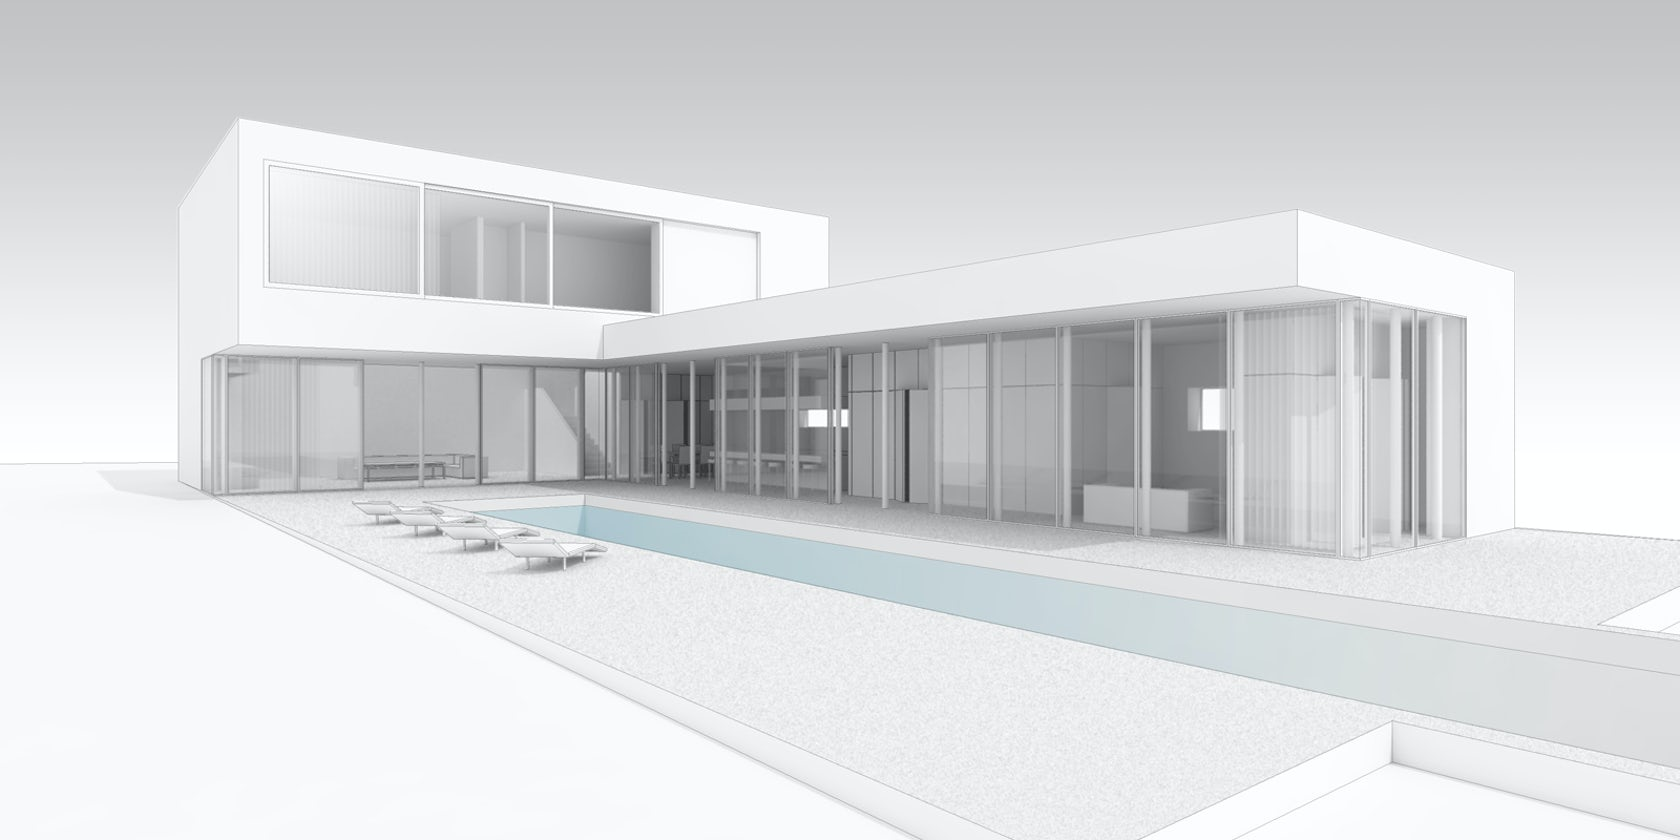 Villa berlin architizer - Mars architekten ...